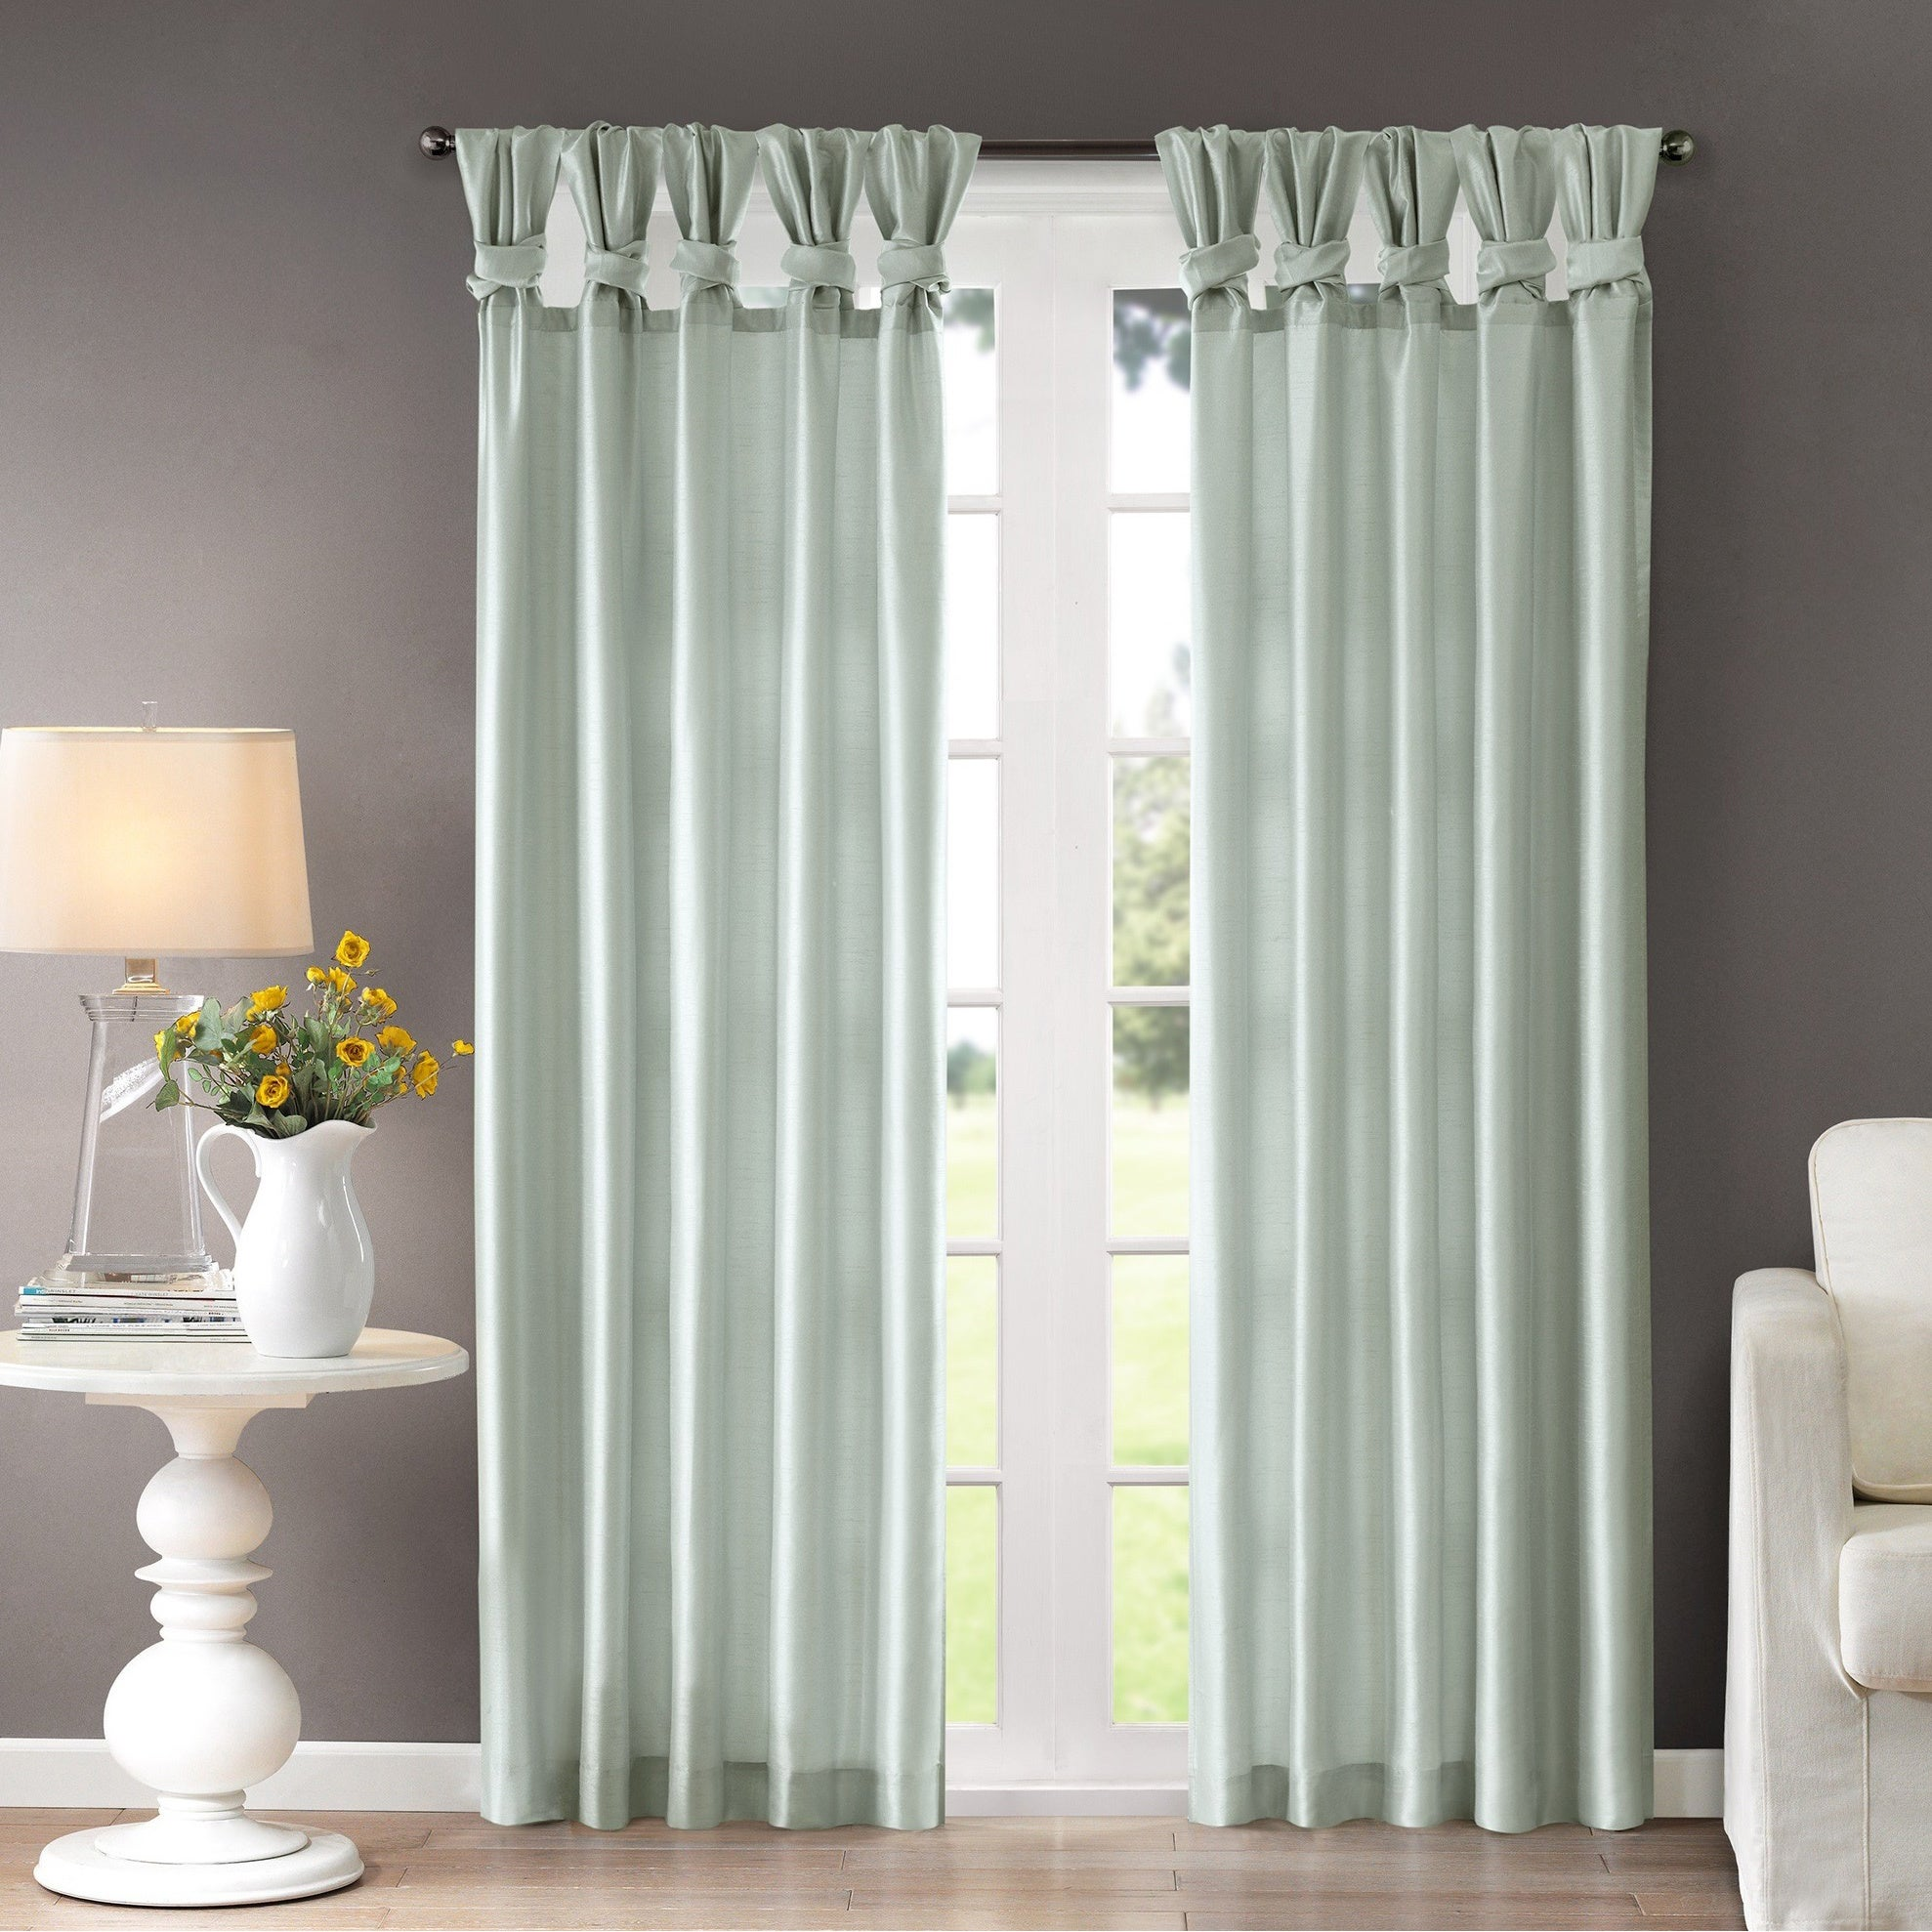 lined rod pleat bath pin drapes bed curtain beyond back spellbound pocket tab pinch inch panel window